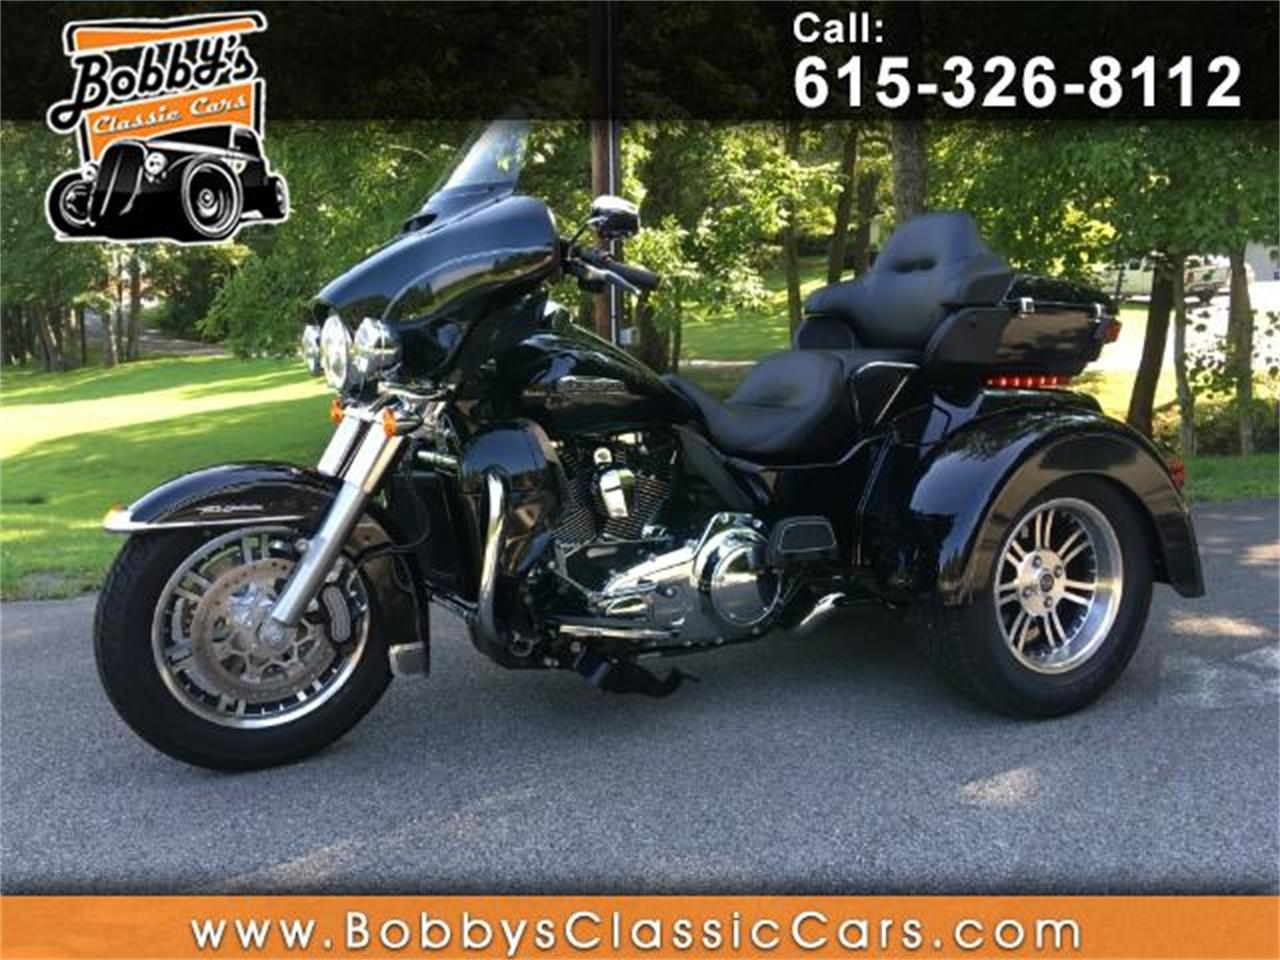 For Sale: 2015 Harley-Davidson Trike in Dickson, Tennessee